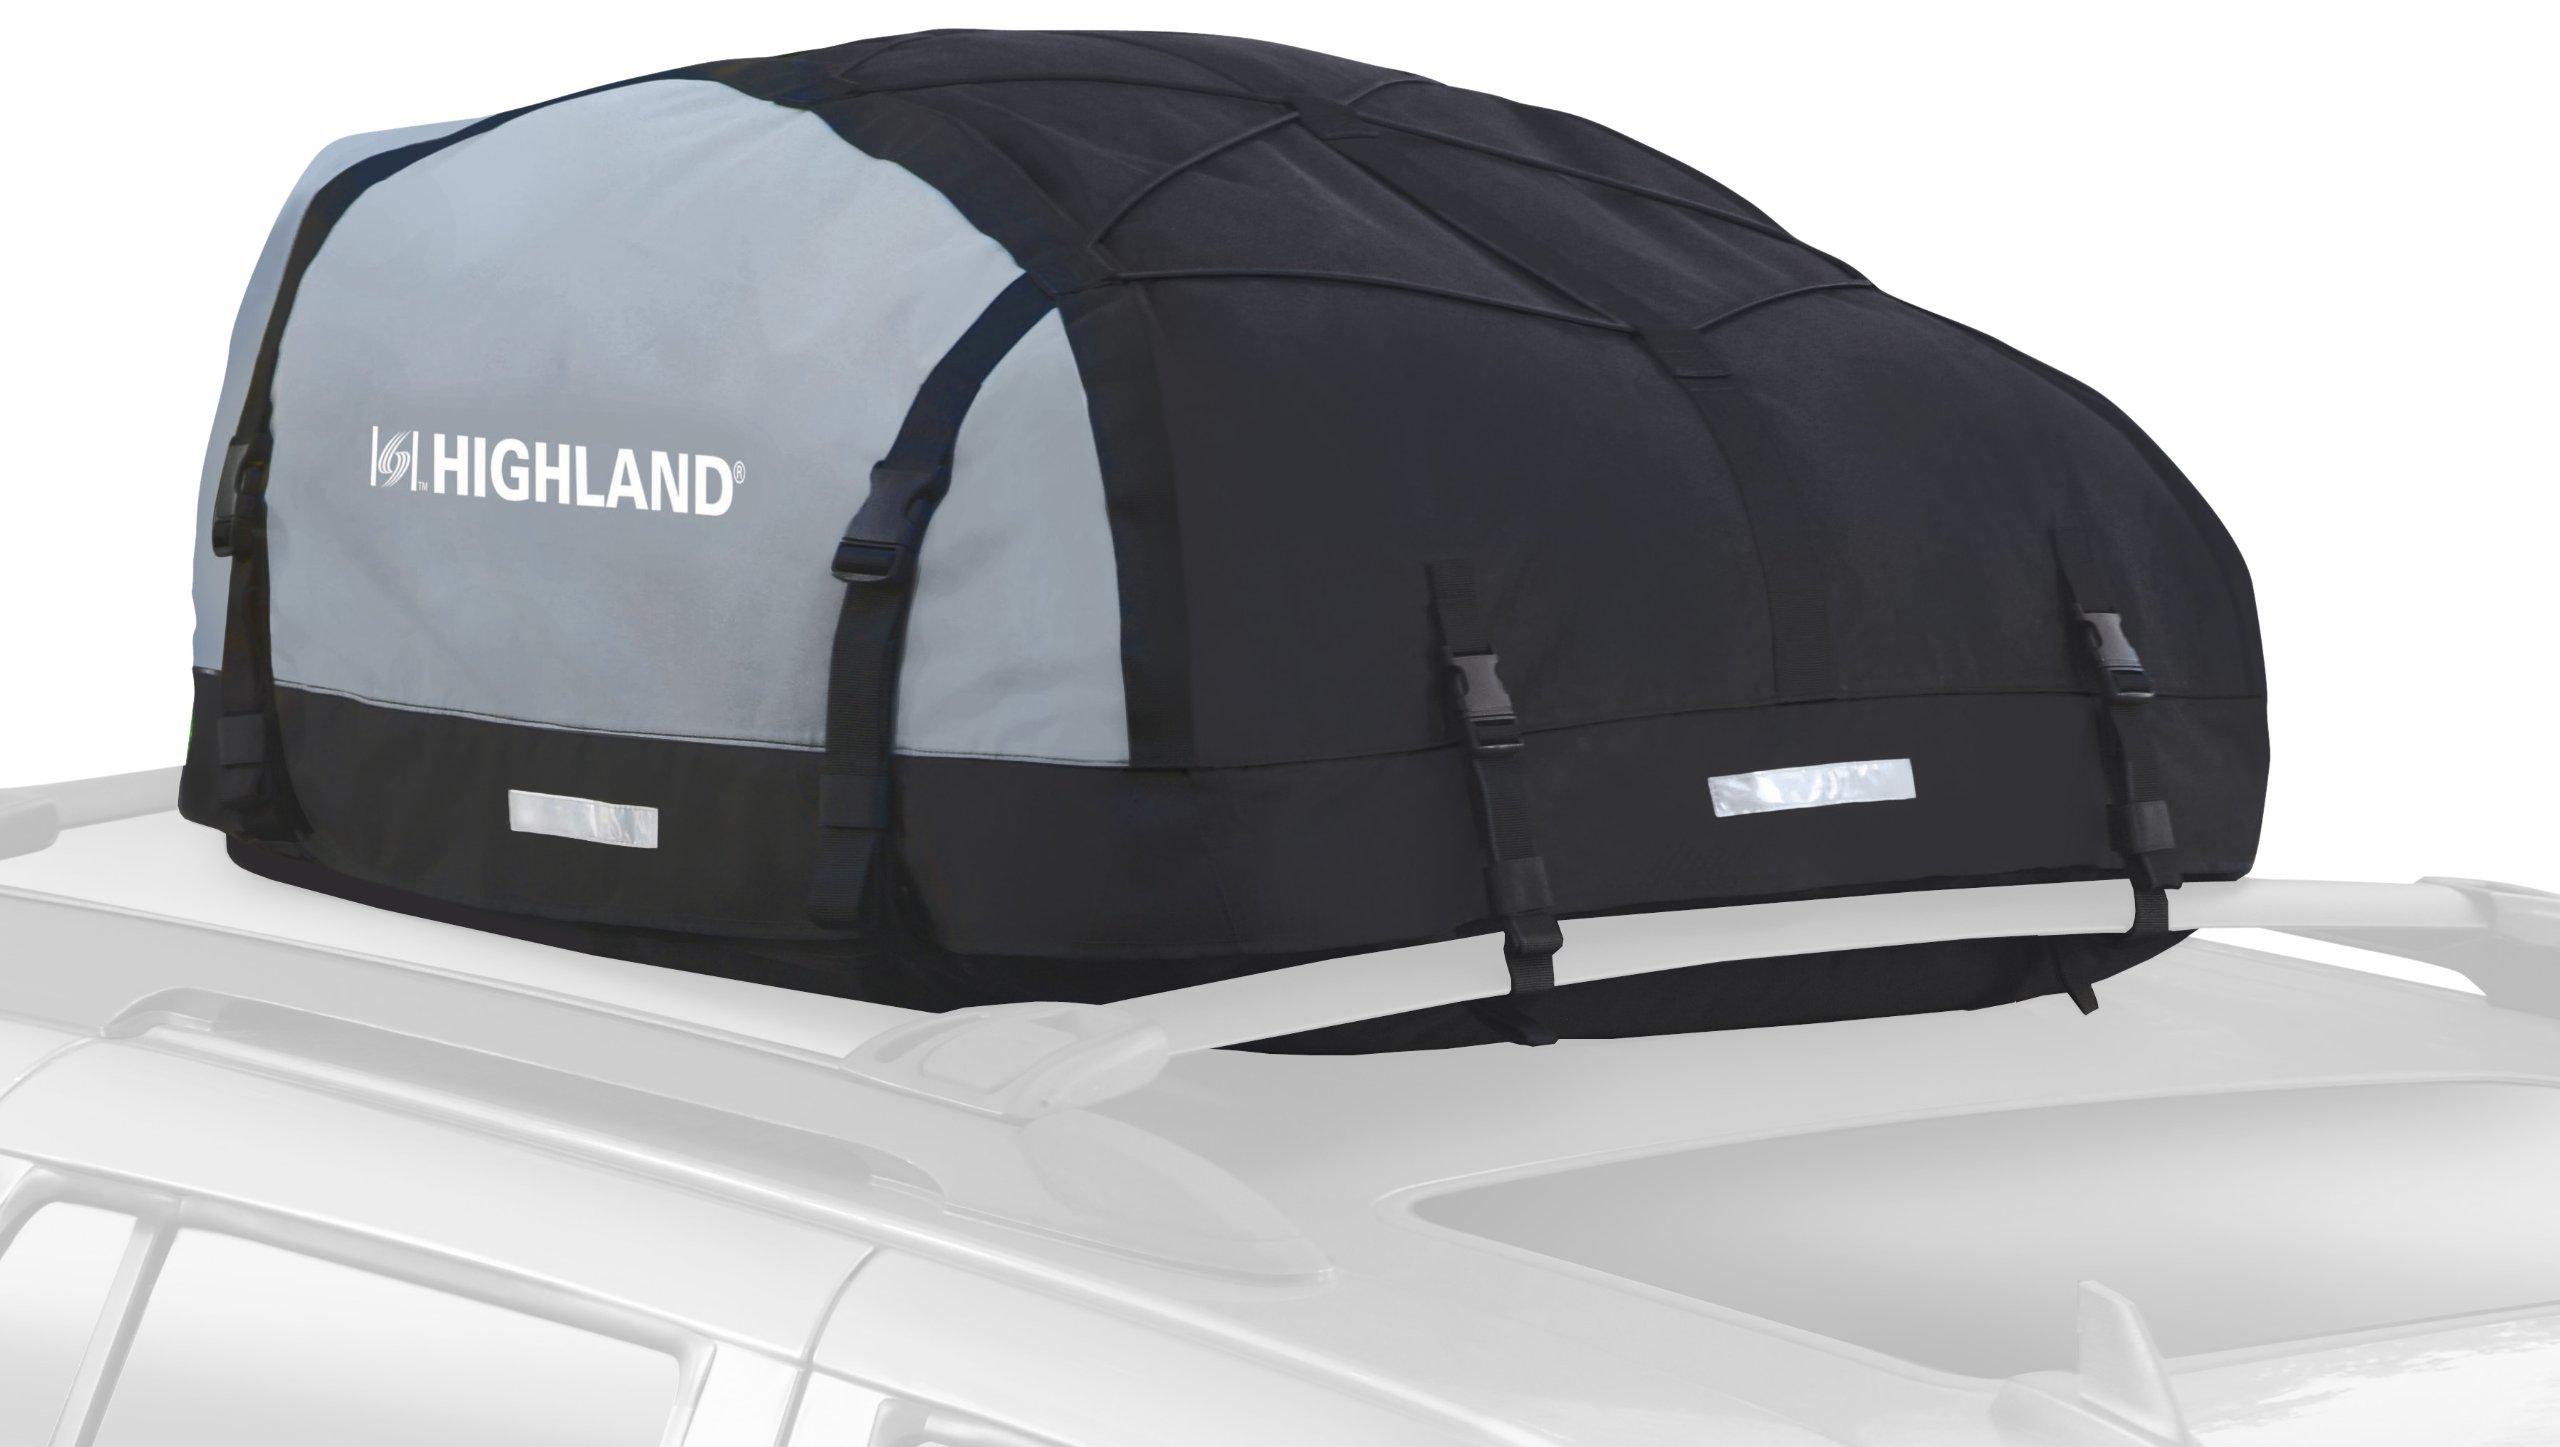 Highland 1039800 Black/Gray 10-15 cu.ft. Expandable Car Top Bag